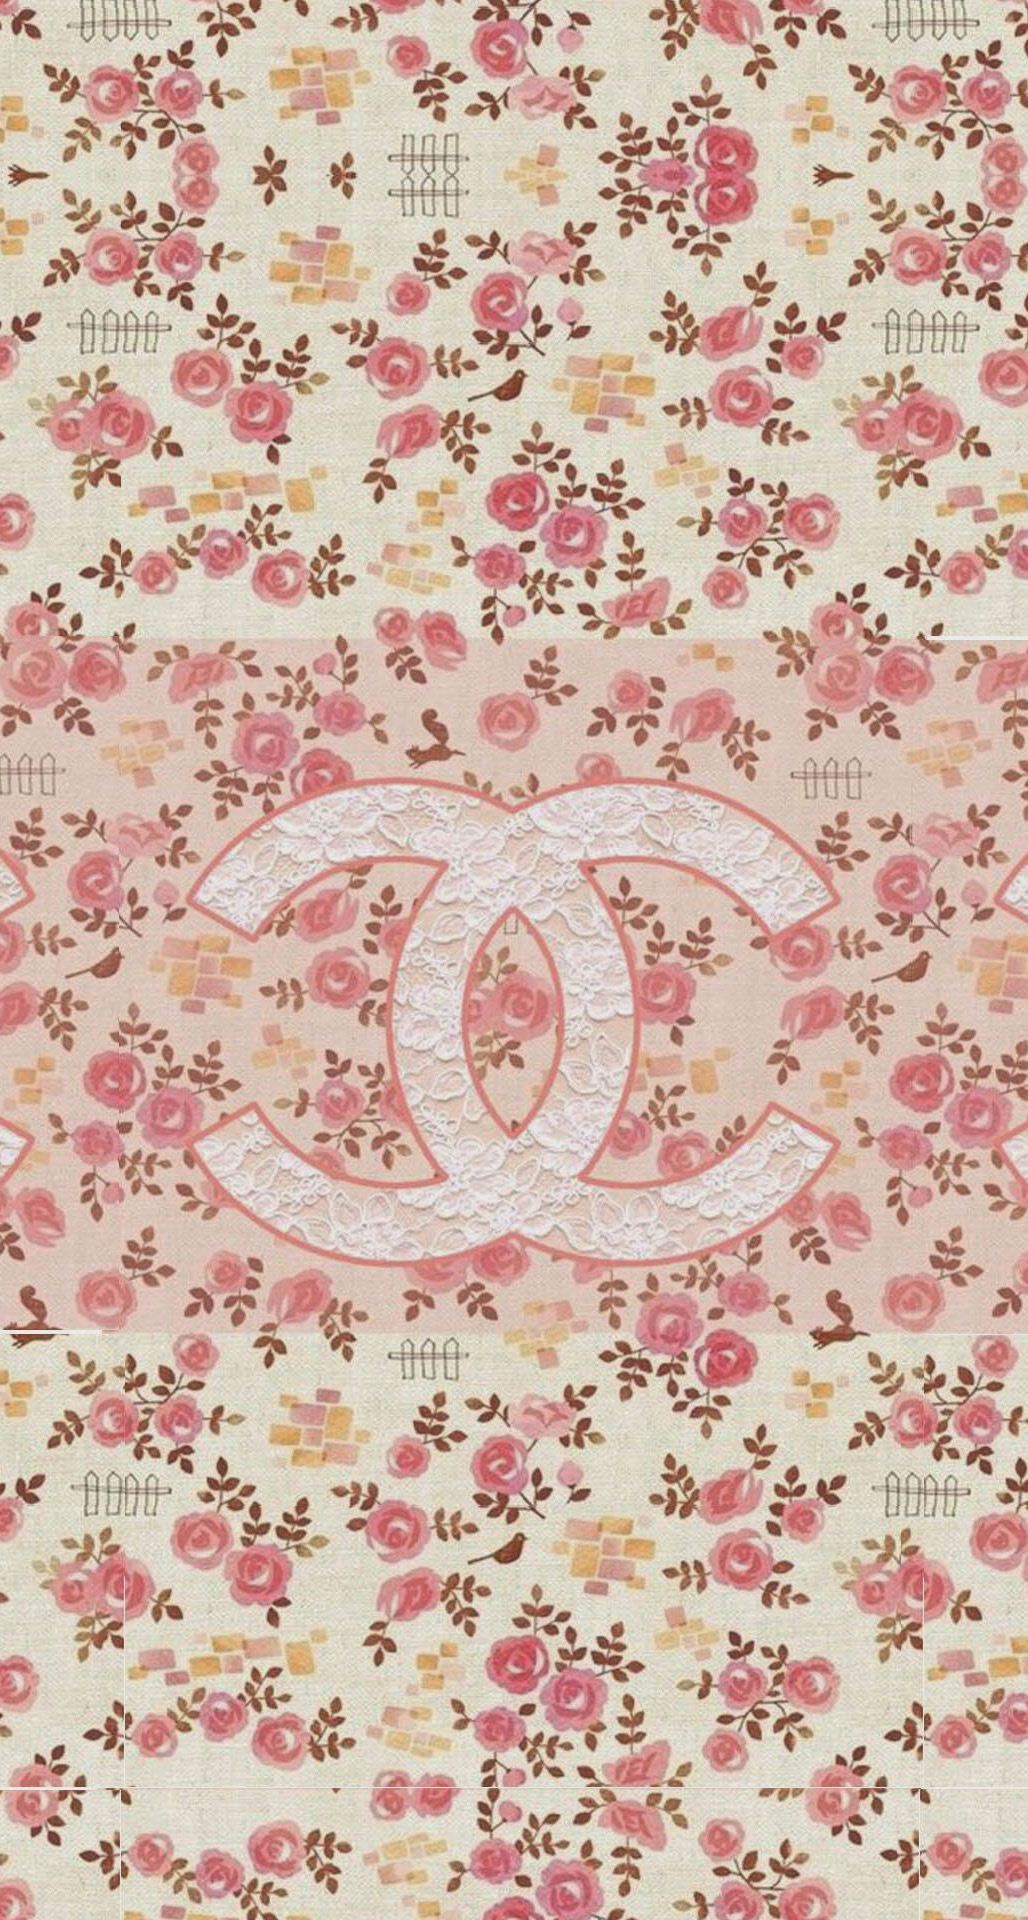 Coco Chanel Flowers Pattern Logo iPhone 6 Plus HD Wallpaper iPod 1028x1920